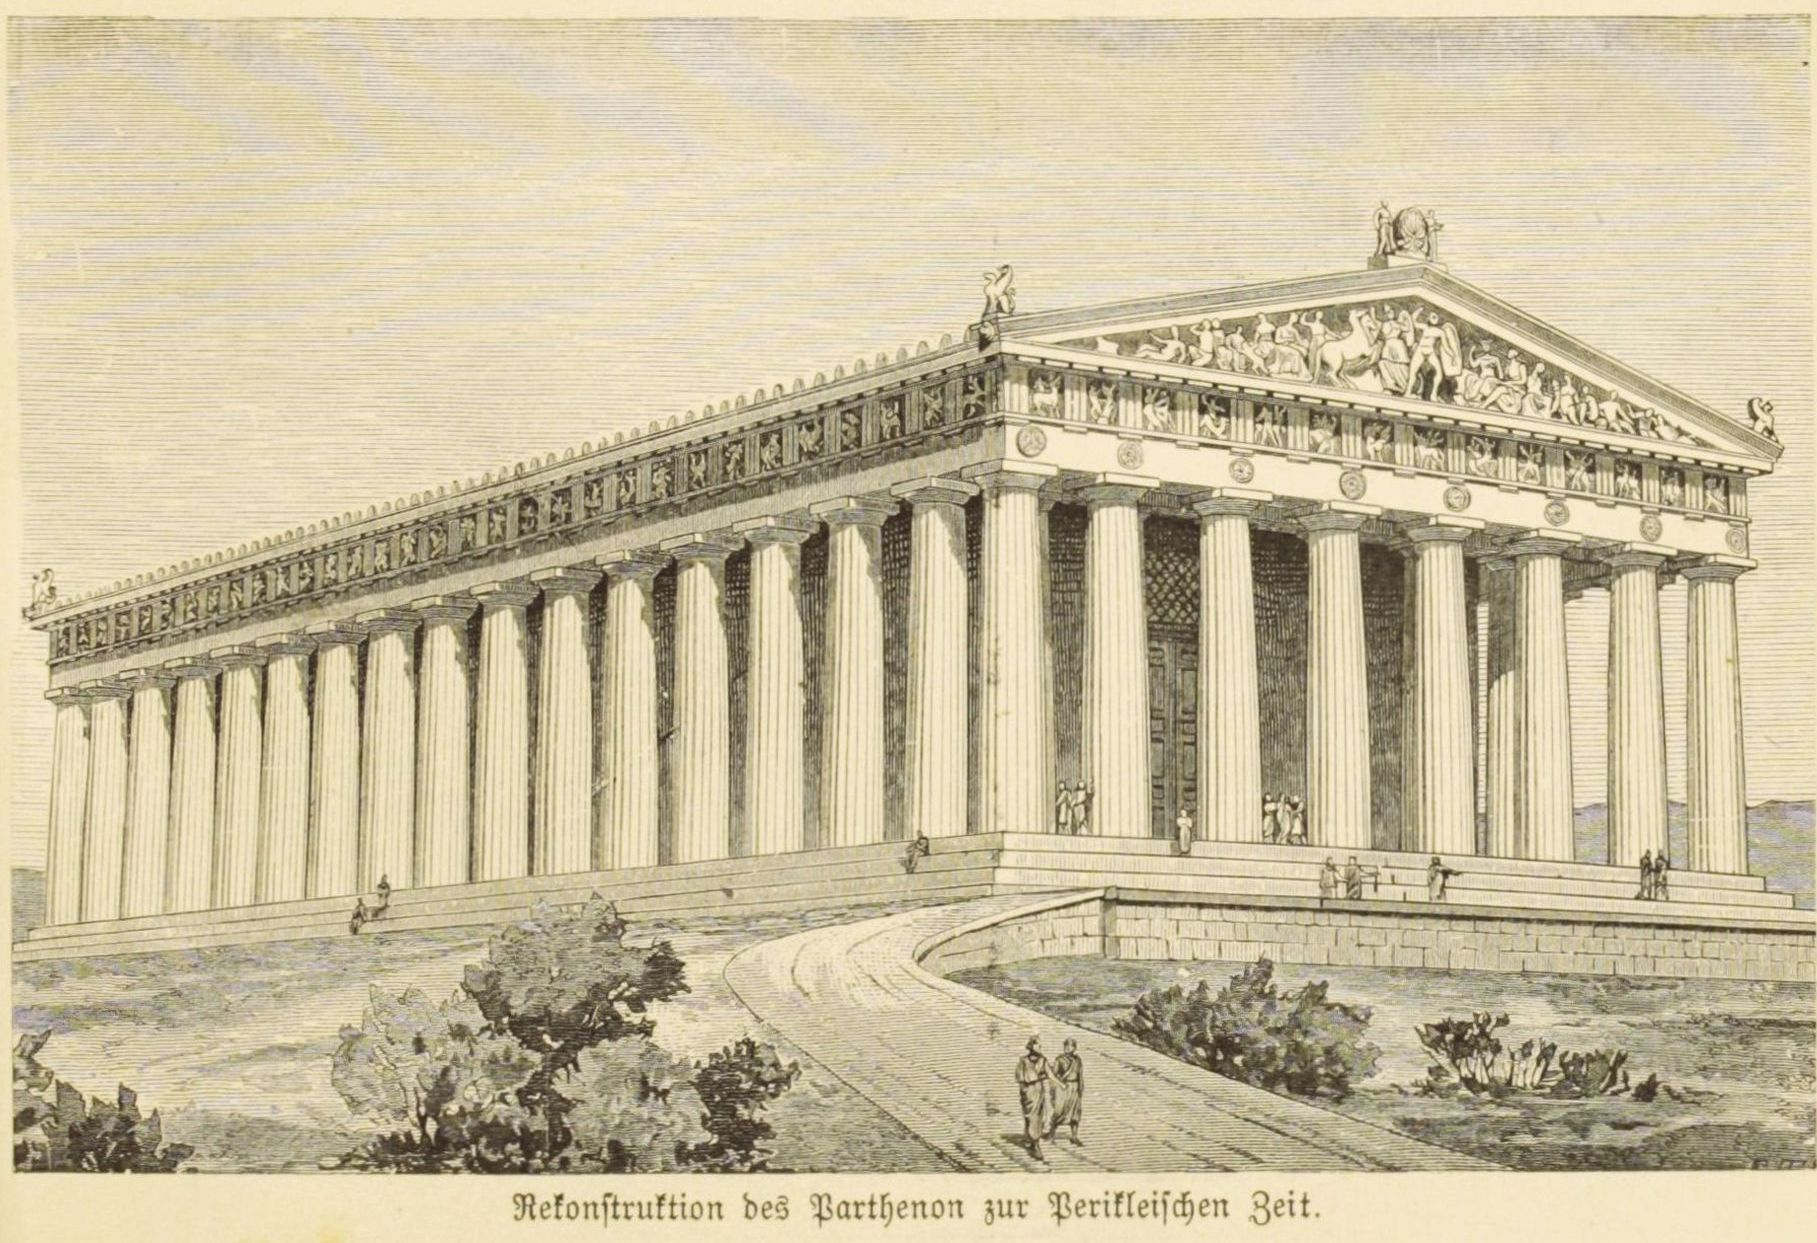 parthenon essay thesis The colosseum and the parthenon essay  introduction: the colosseum and the parthenon are basically the greatest and ancient architectural creations of humanity in order to understand them better it is necessary to compare and contrast these two buildings the first one is the colosseum.